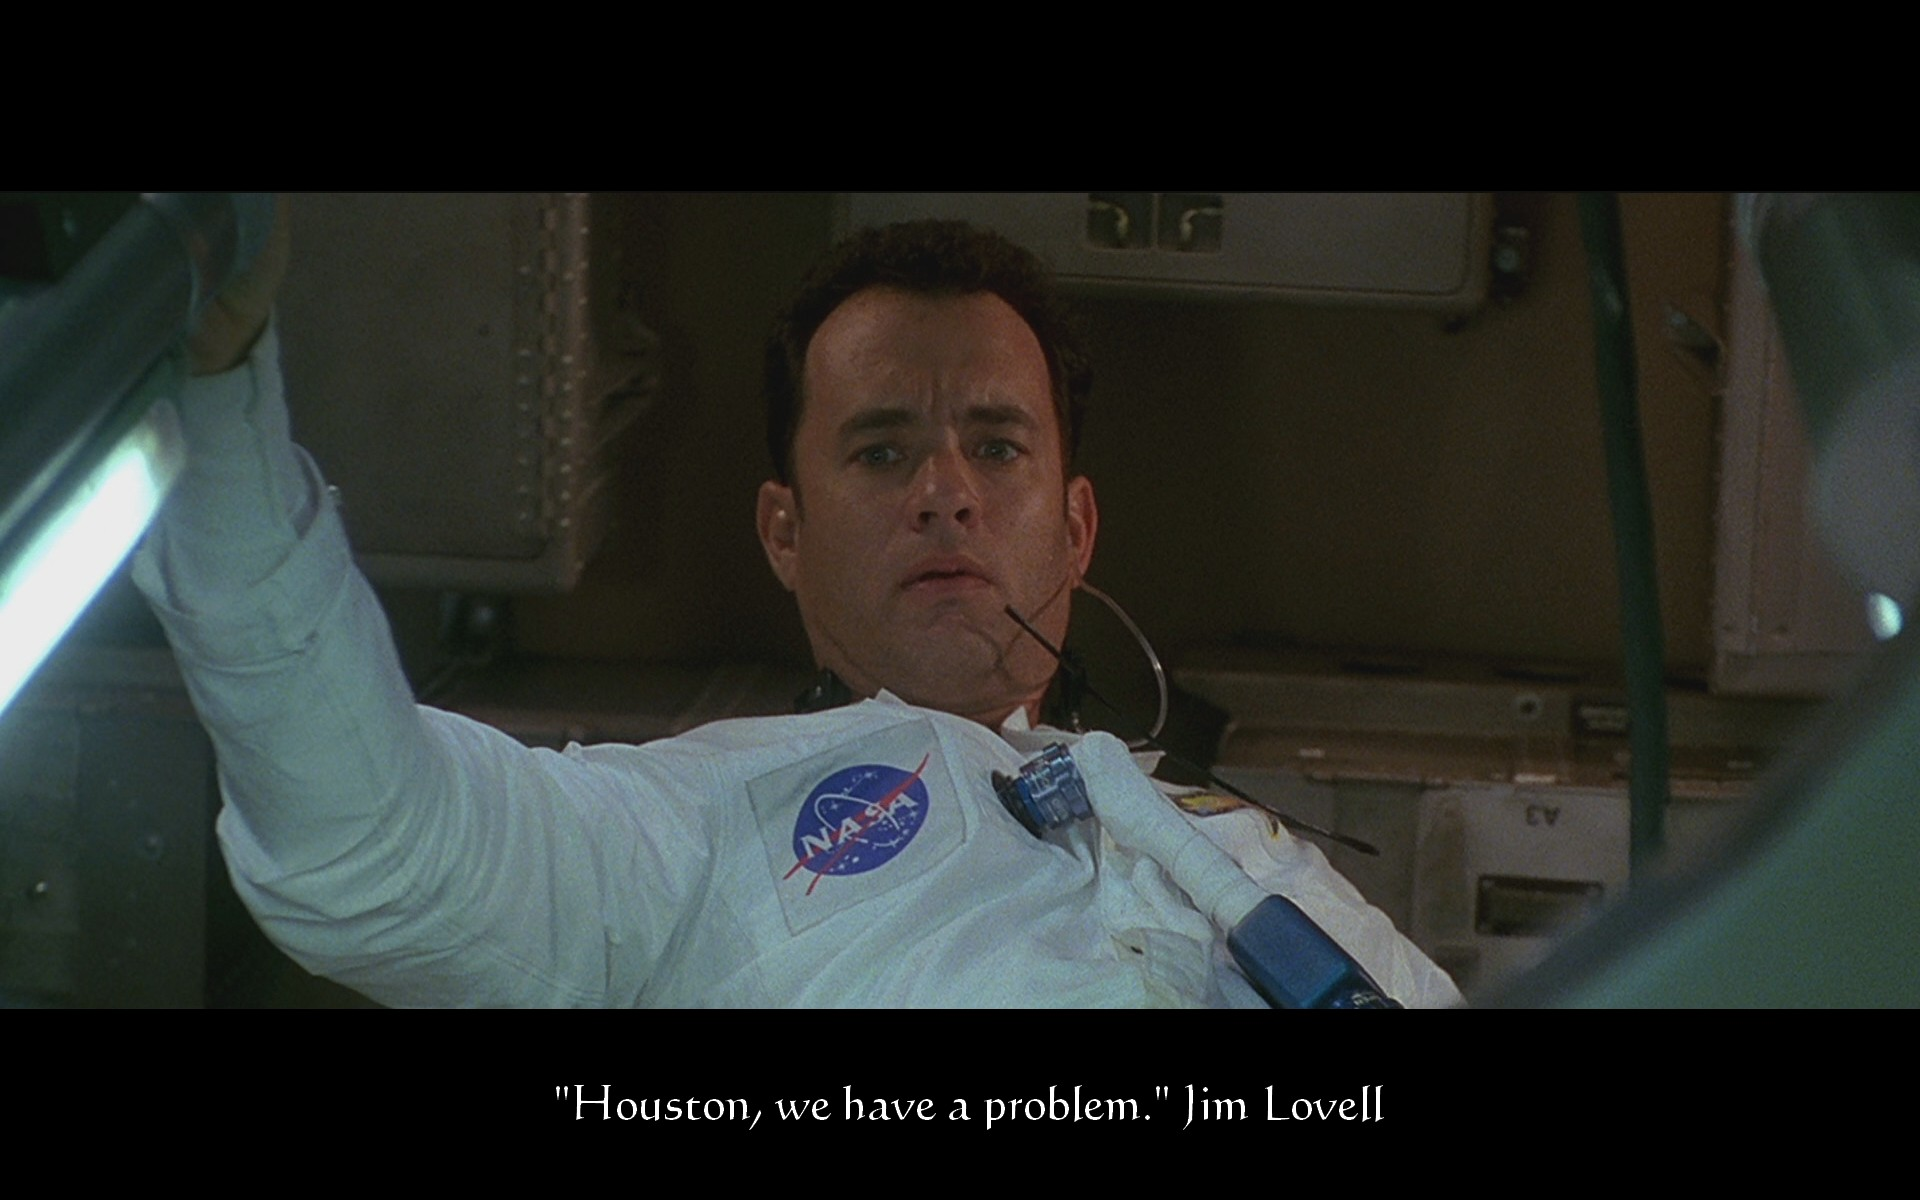 Apollo 13 Quotes Stunning can you match iconic roles with their unforgettable quotes? | playbuzz